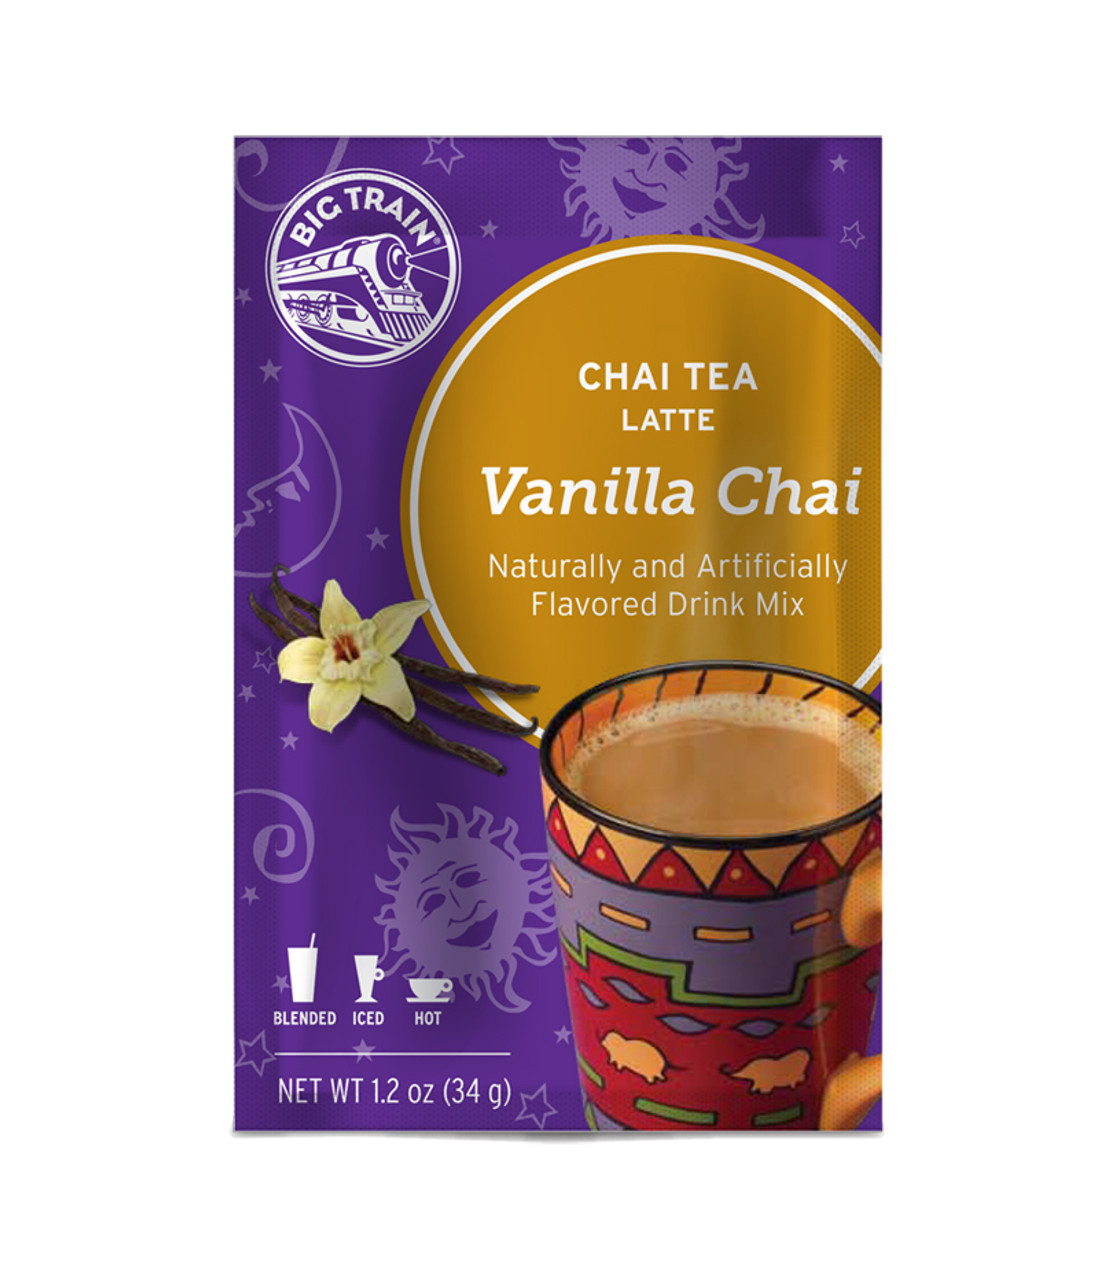 Big Train Chai Tea - Single Serve Packet: Vanilla